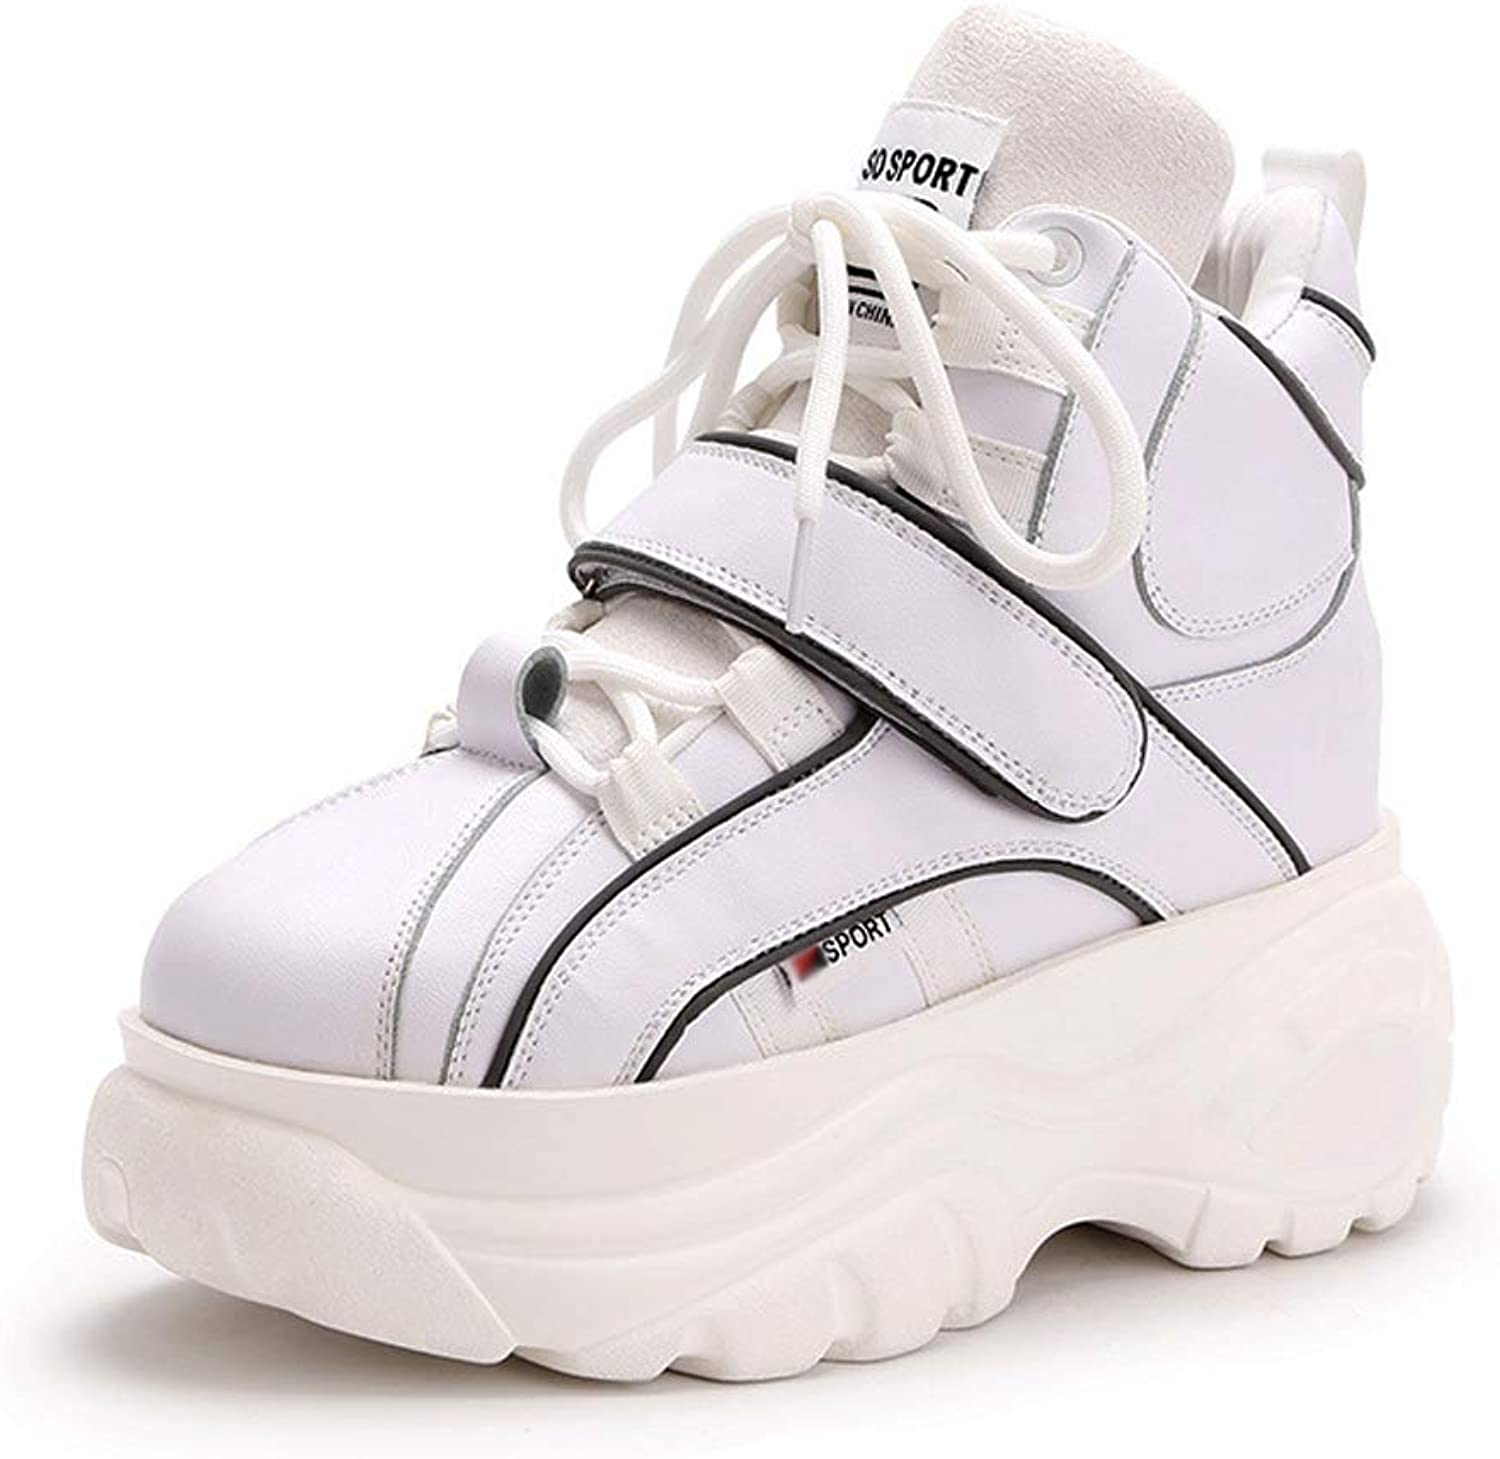 Winter Casual Sneaker Dorky Dad shoes, Thick Soles High Upper Inside Heighten 2Cm PU Lightweight, Fashion Women's shoes Platform shoes,White,40